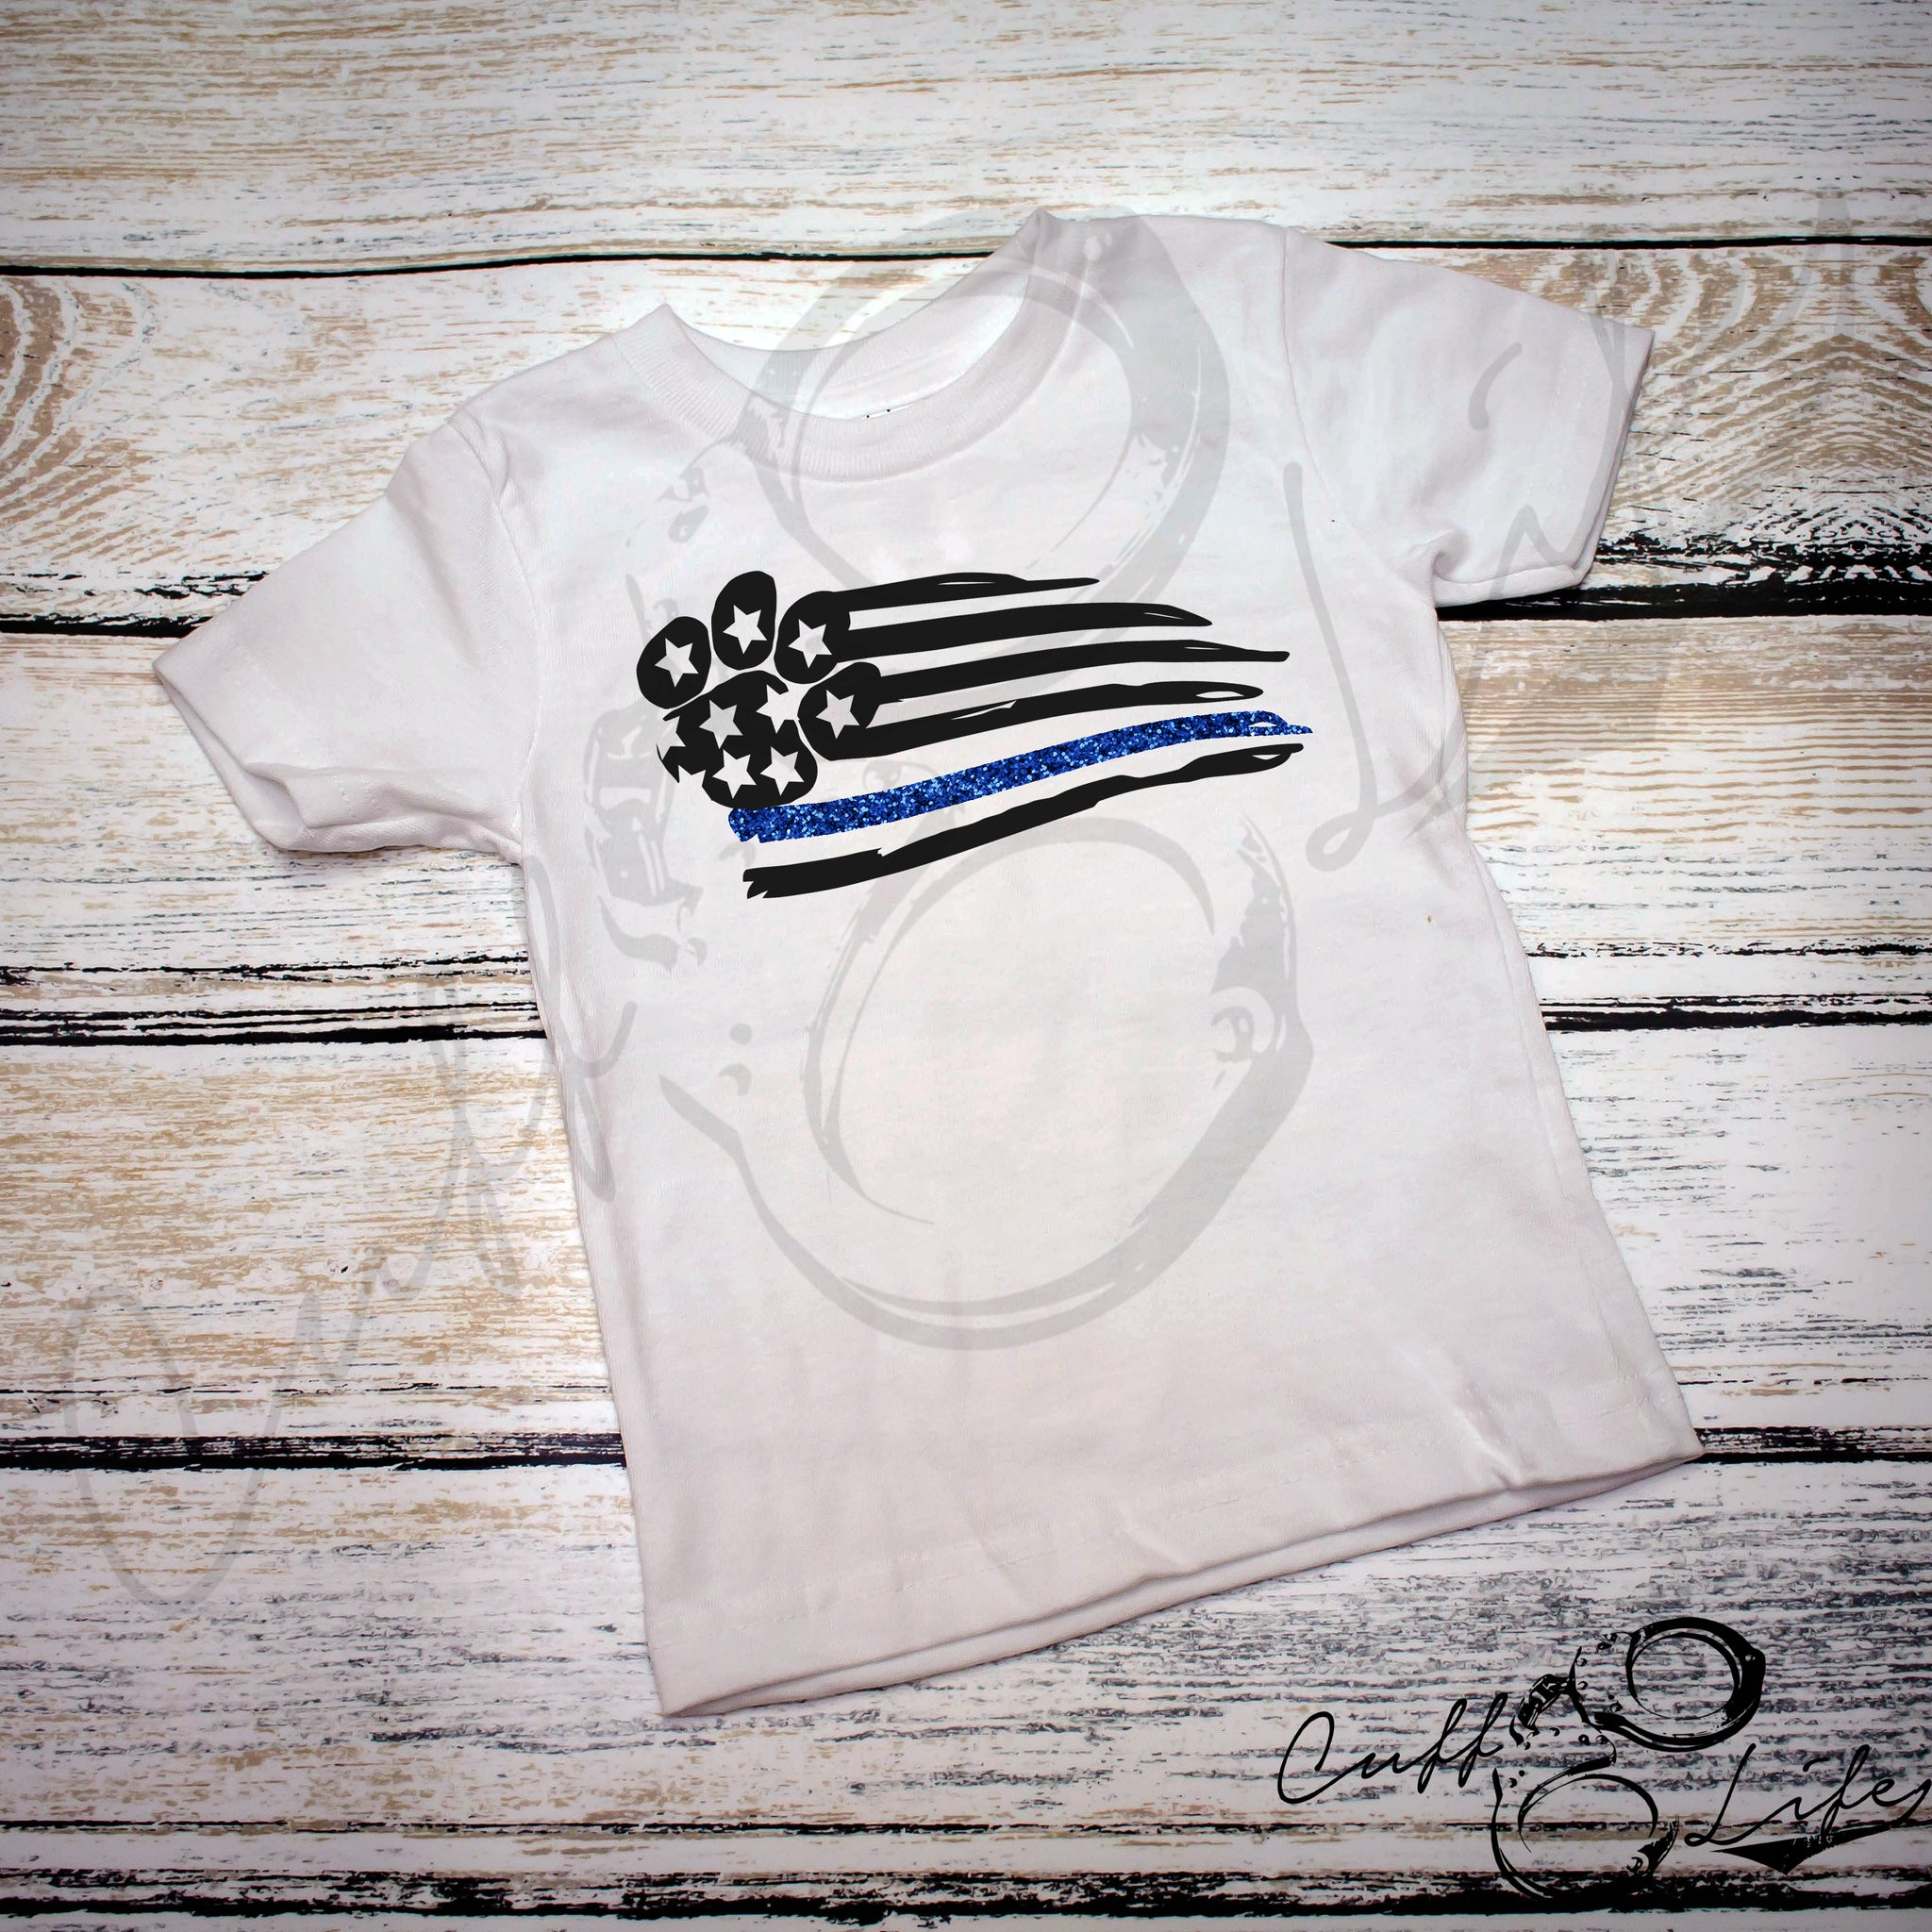 K-9 Thin Blue Line Flag - Toddler/Youth T-Shirt